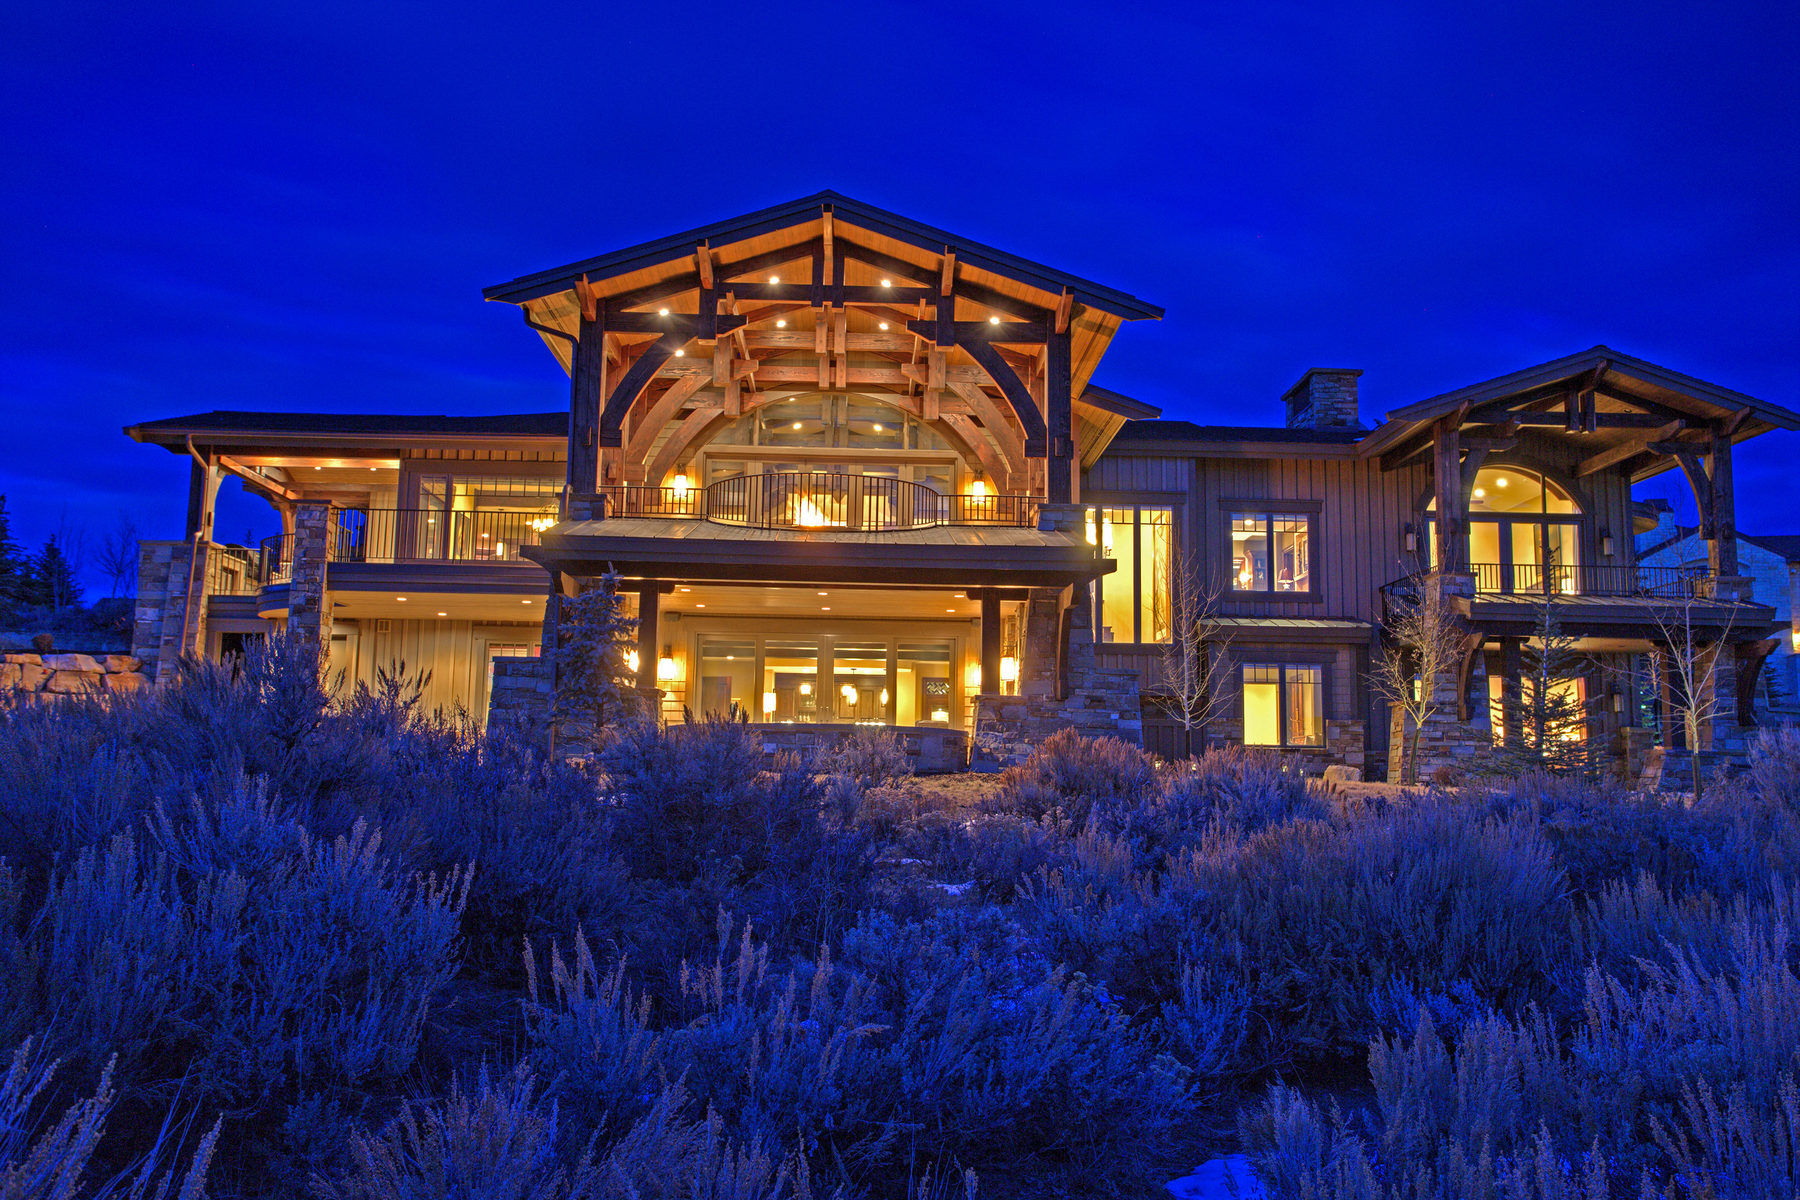 Moradia para Venda às Spectacular Home in Promontory. Featured in the 2013 Parade of Homes! 2817 Blue Sage Trl Park City, Utah, 84098 Estados Unidos